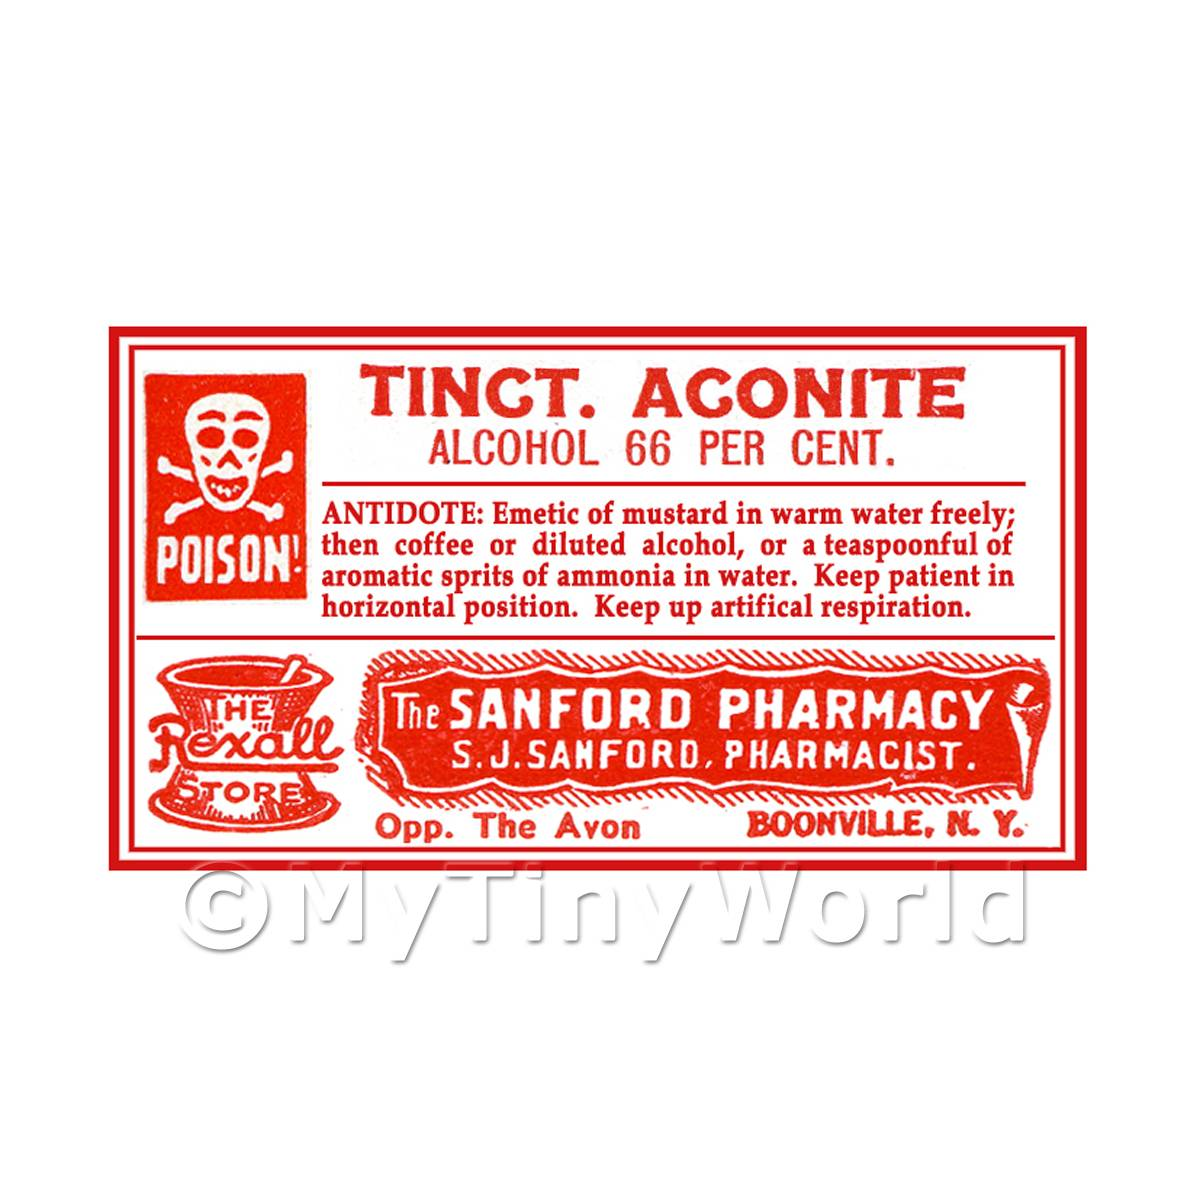 Dolls House Miniature Tinct. Aconite Poison Label Style 4